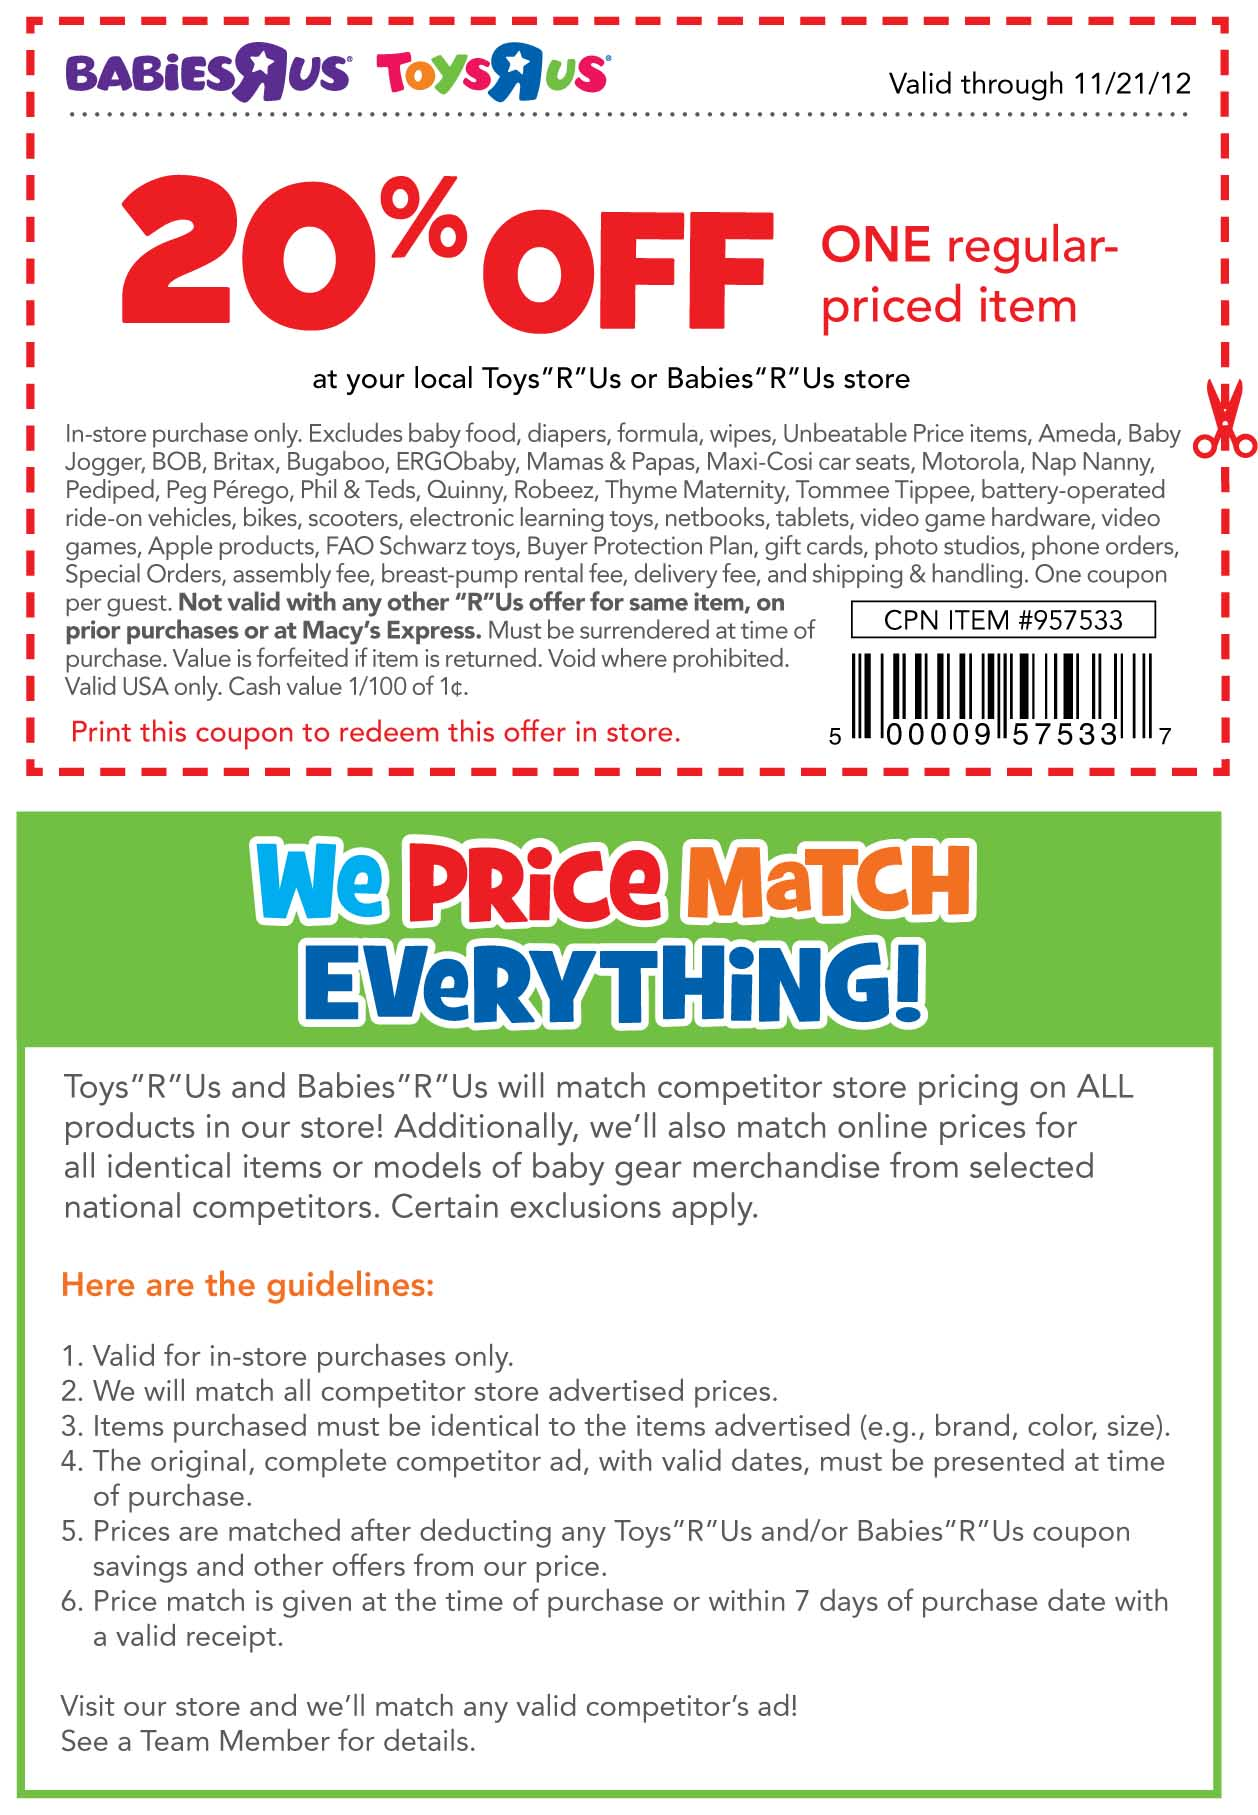 Toys R Us Coupon 20 Off One Item : coupon, Babies, Coupons, Codes, Gallery